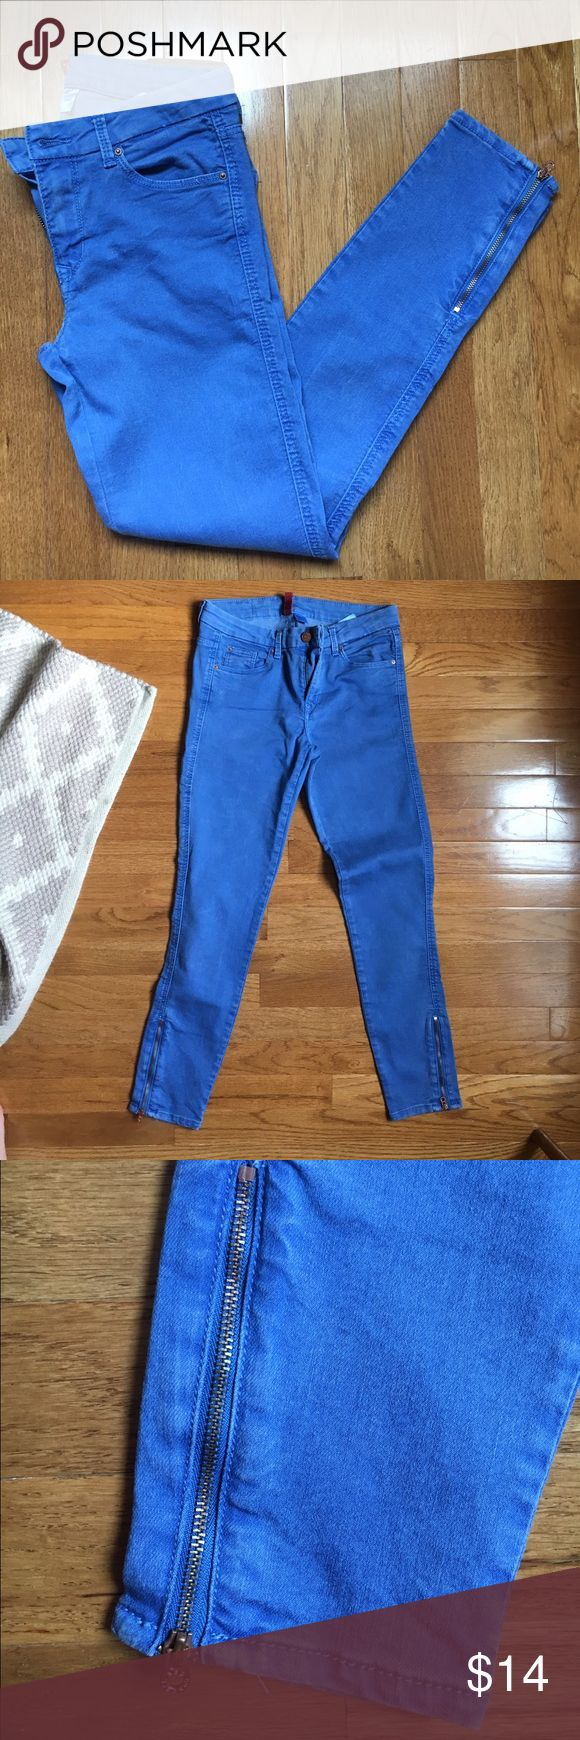 Blue cropped ankle zip jeans Upper adorable bright blue jeans with zippers at the ankle. Divided Pants Ankle & Cropped